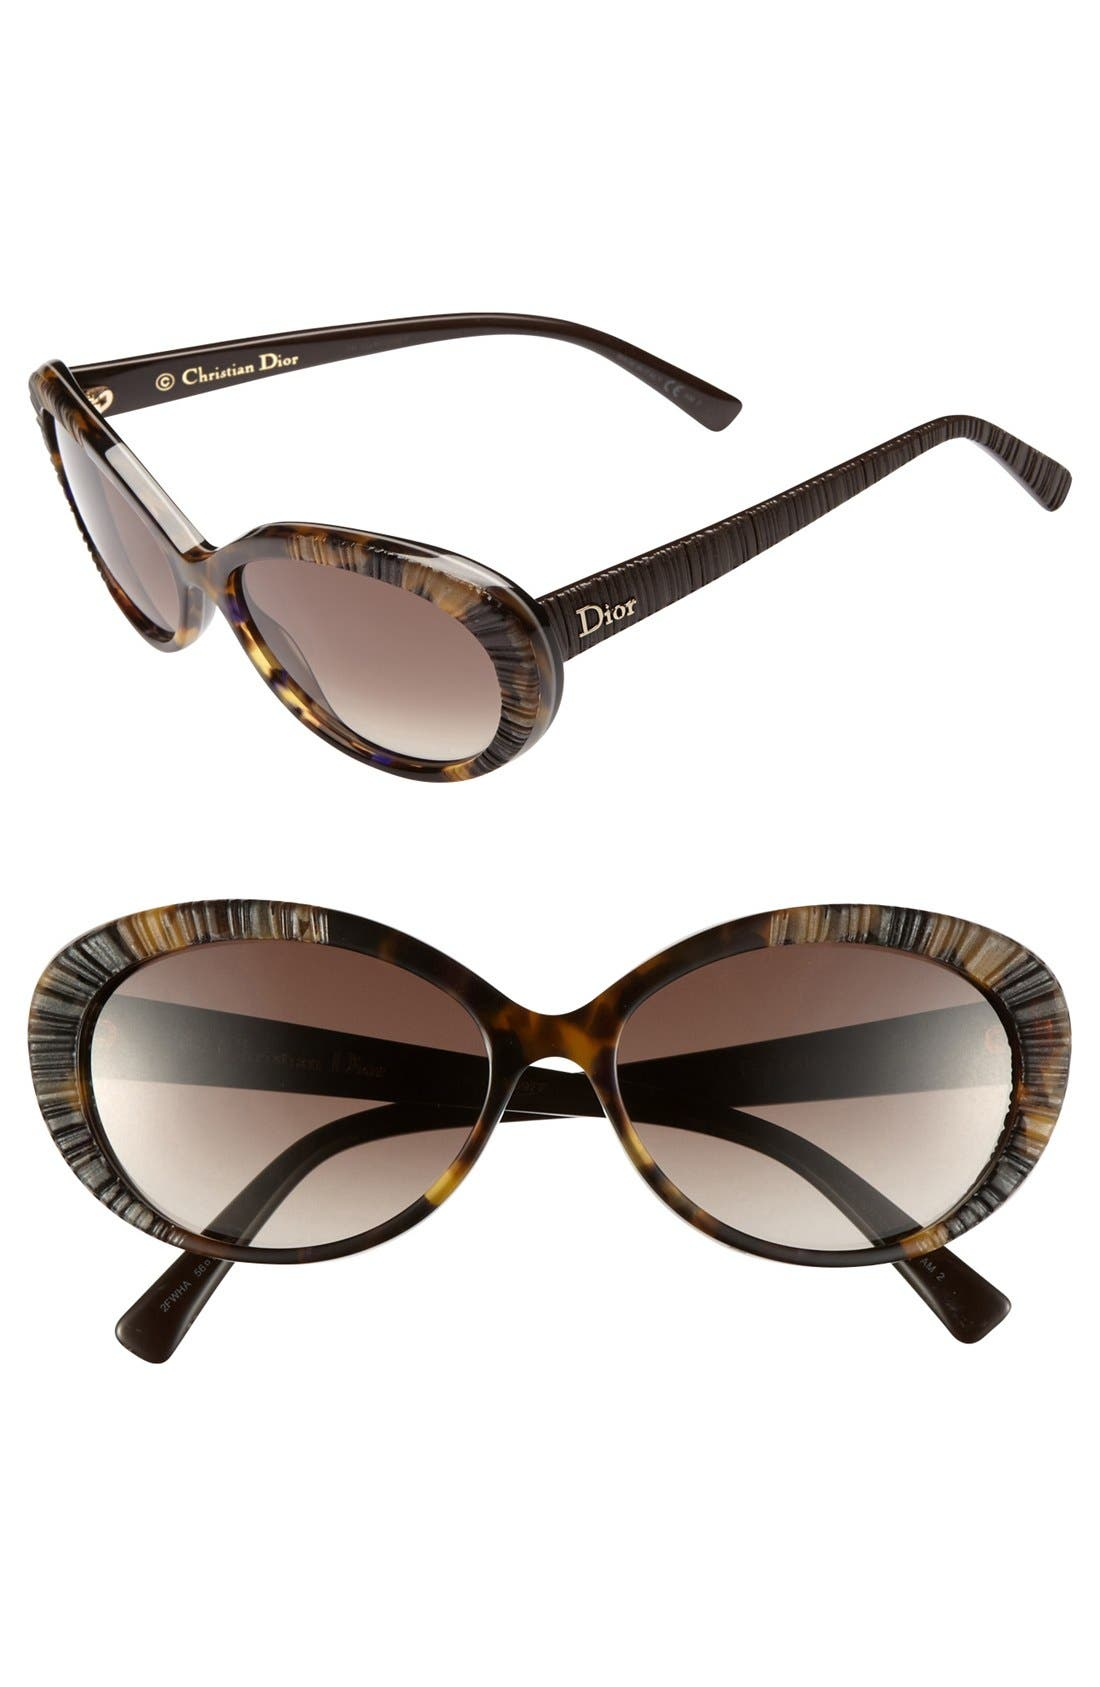 Main Image - Christian Dior 'Taffeta 3/S' 56mm Sunglasses